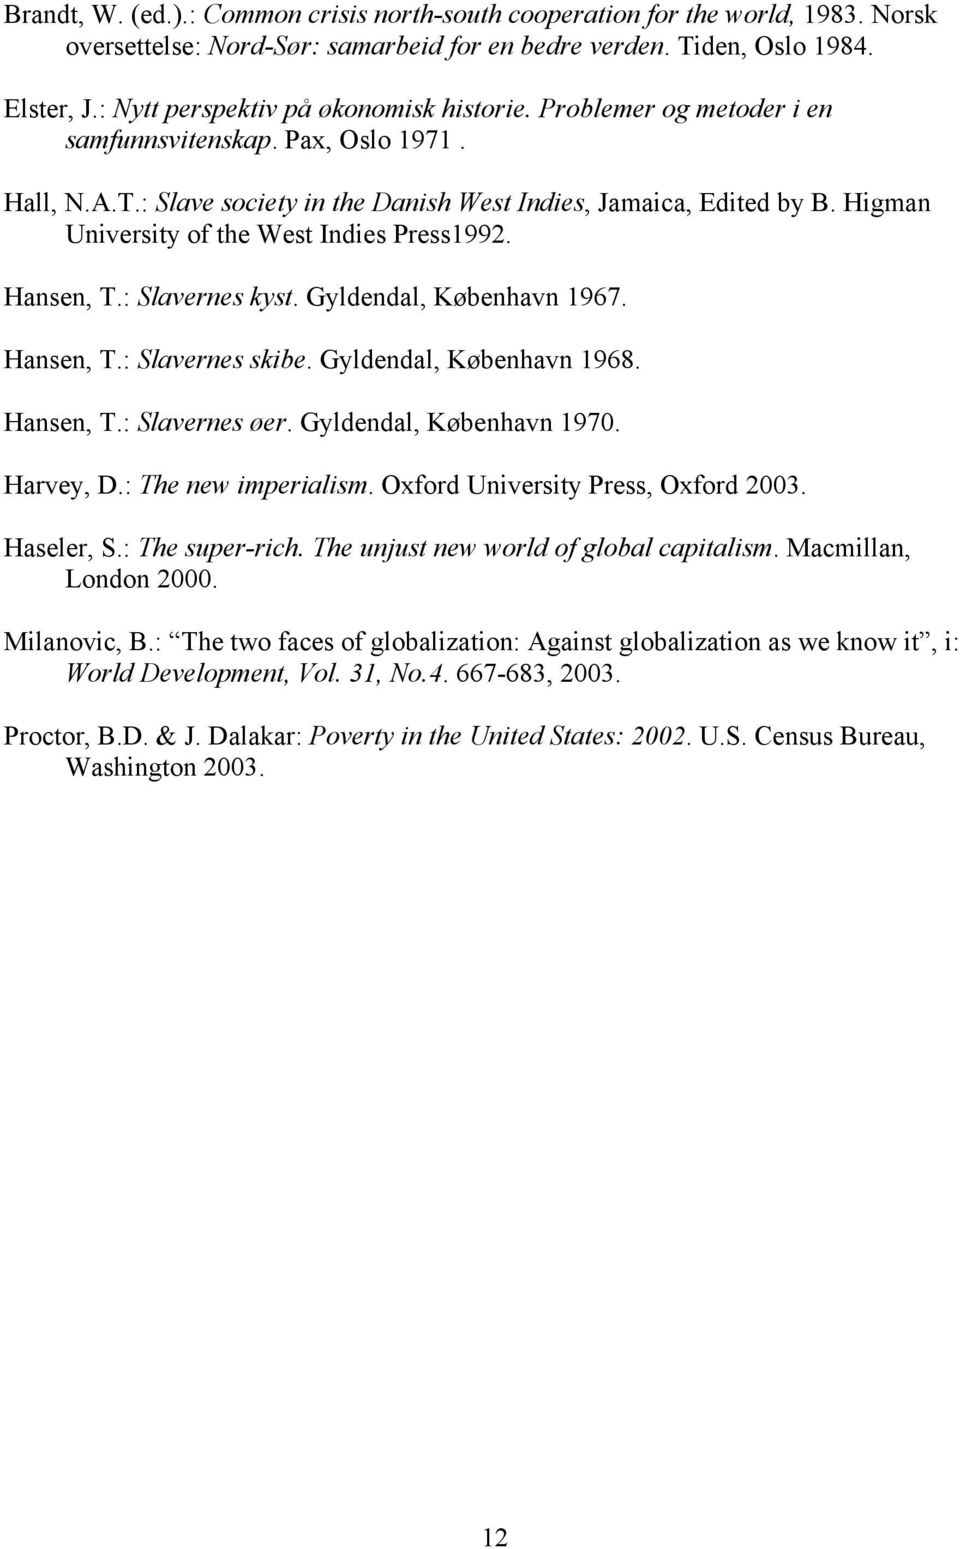 Higman University of the West Indies Press1992. Hansen, T.: Slavernes kyst. Gyldendal, København 1967. Hansen, T.: Slavernes skibe. Gyldendal, København 1968. Hansen, T.: Slavernes øer.